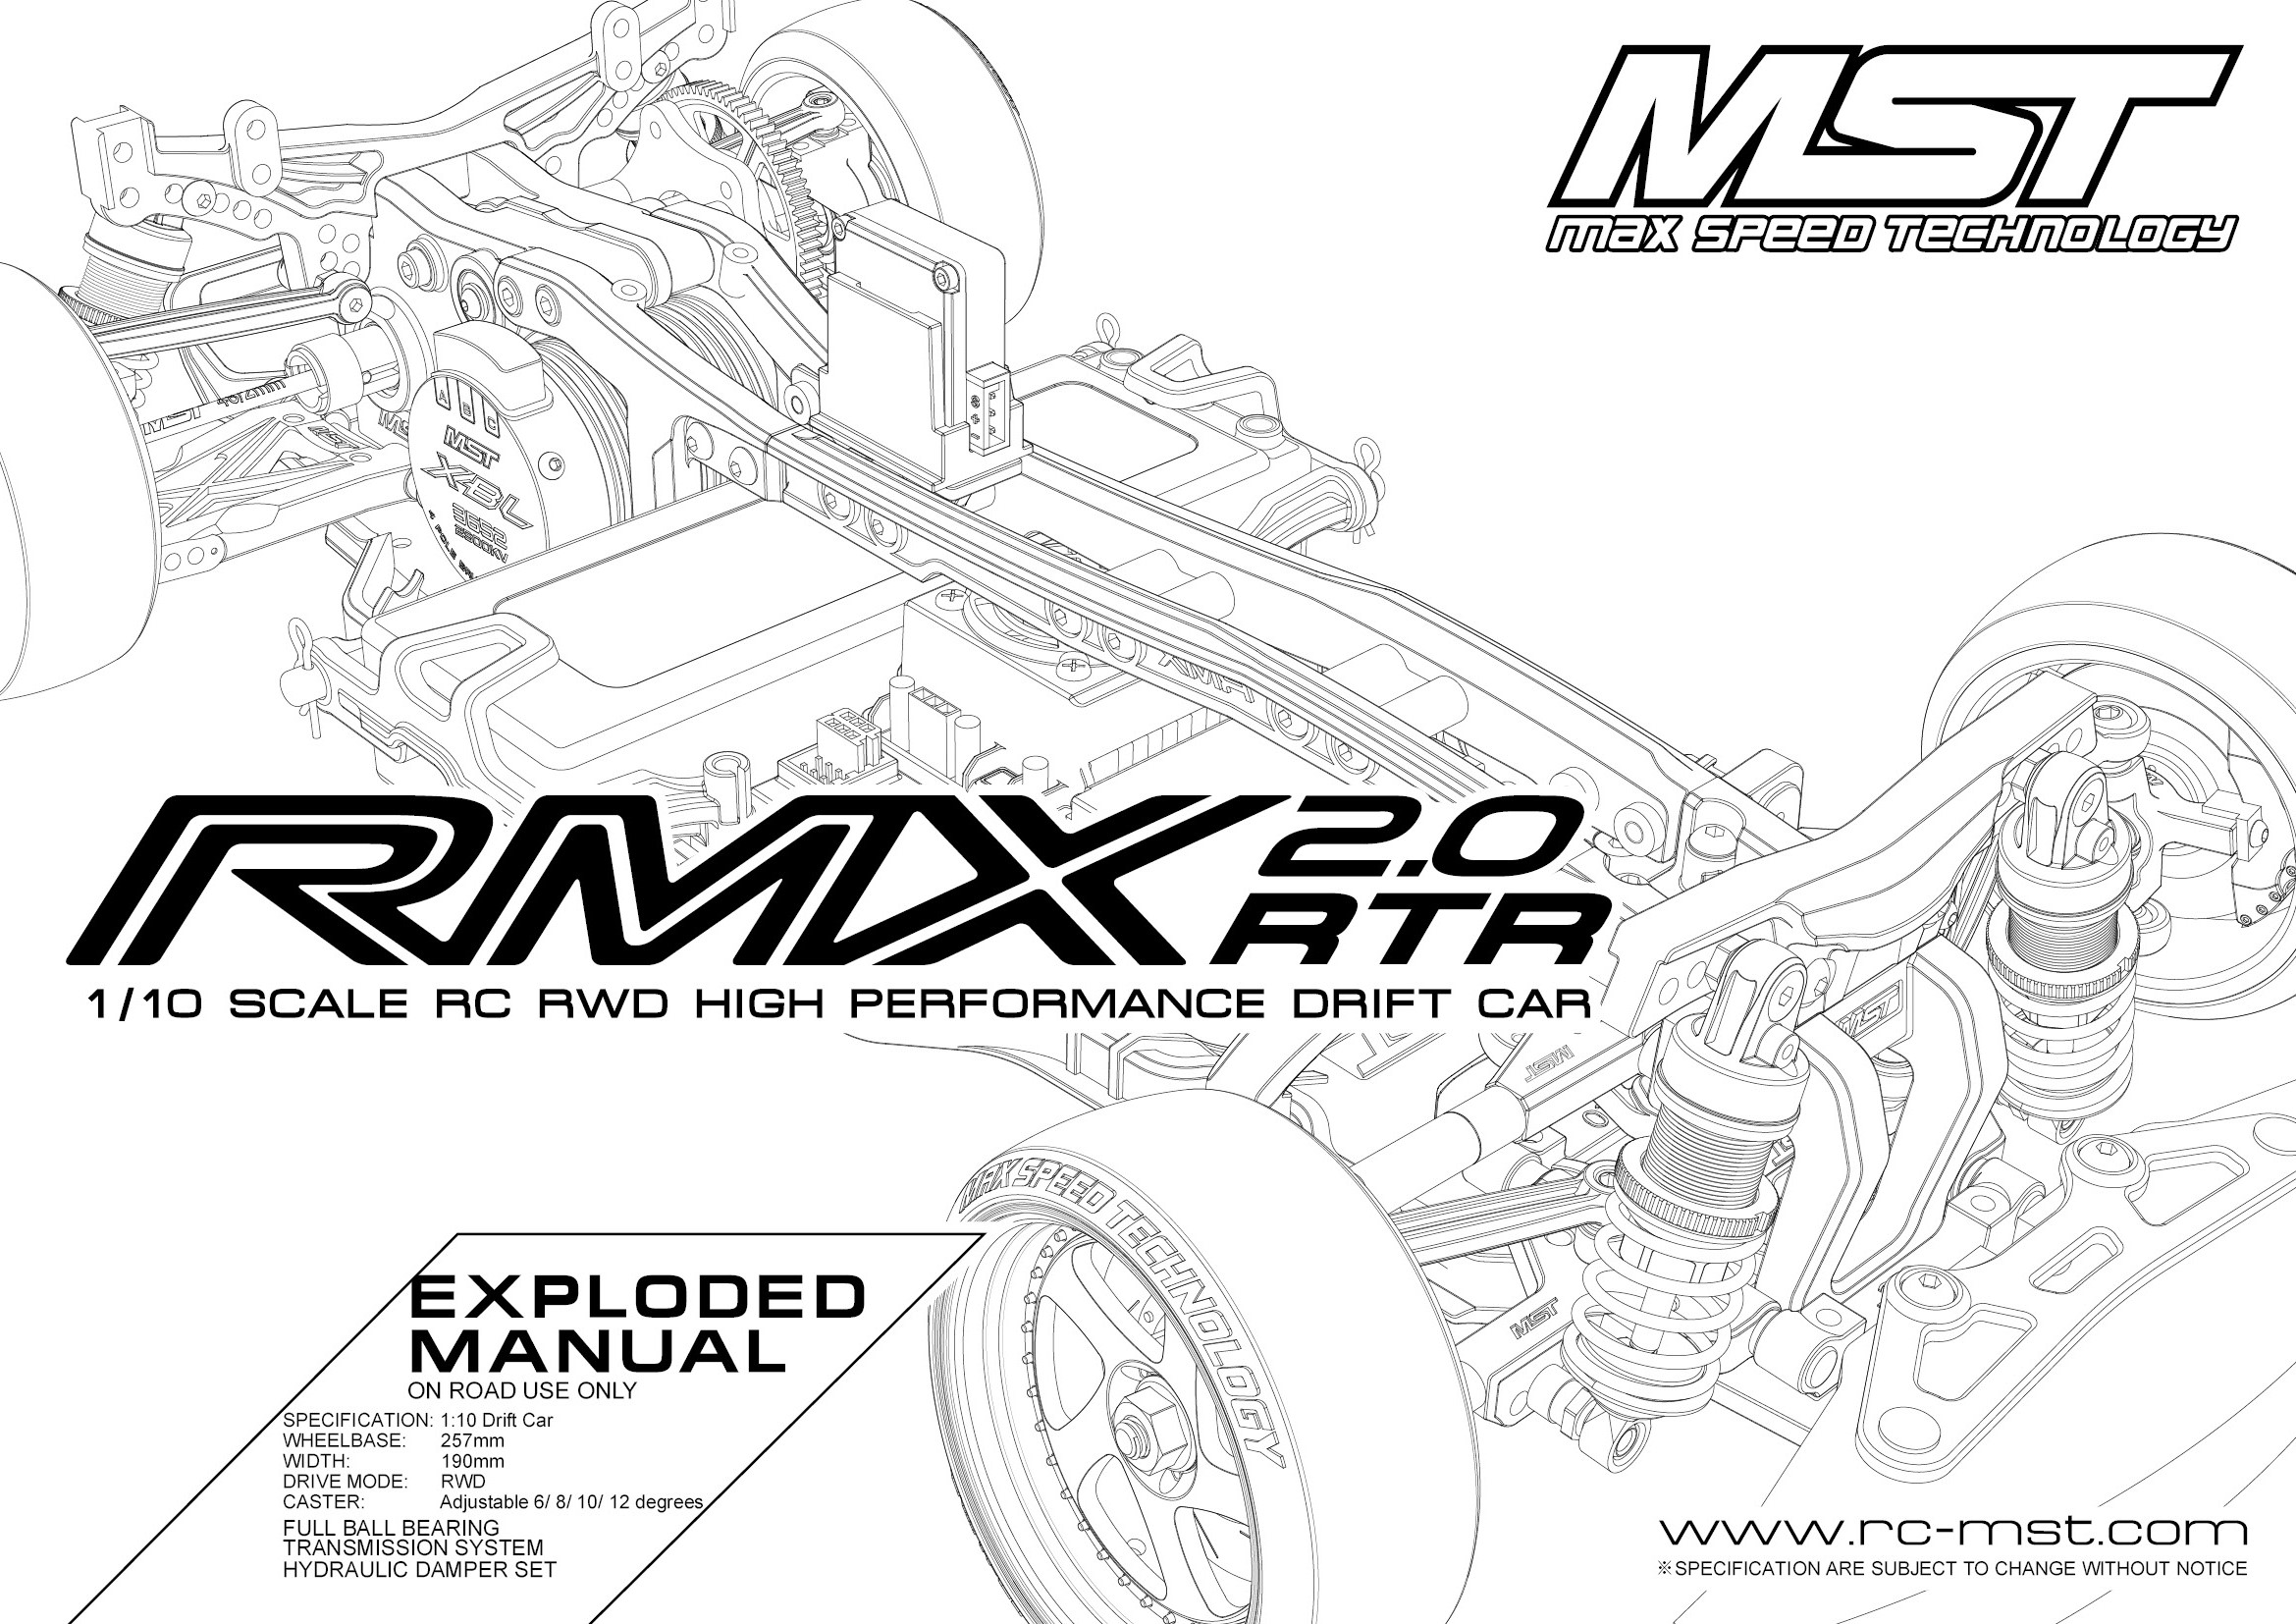 Rmx 2 0 rtr exploded manual max speed technology supportdrift ins rh rc mst